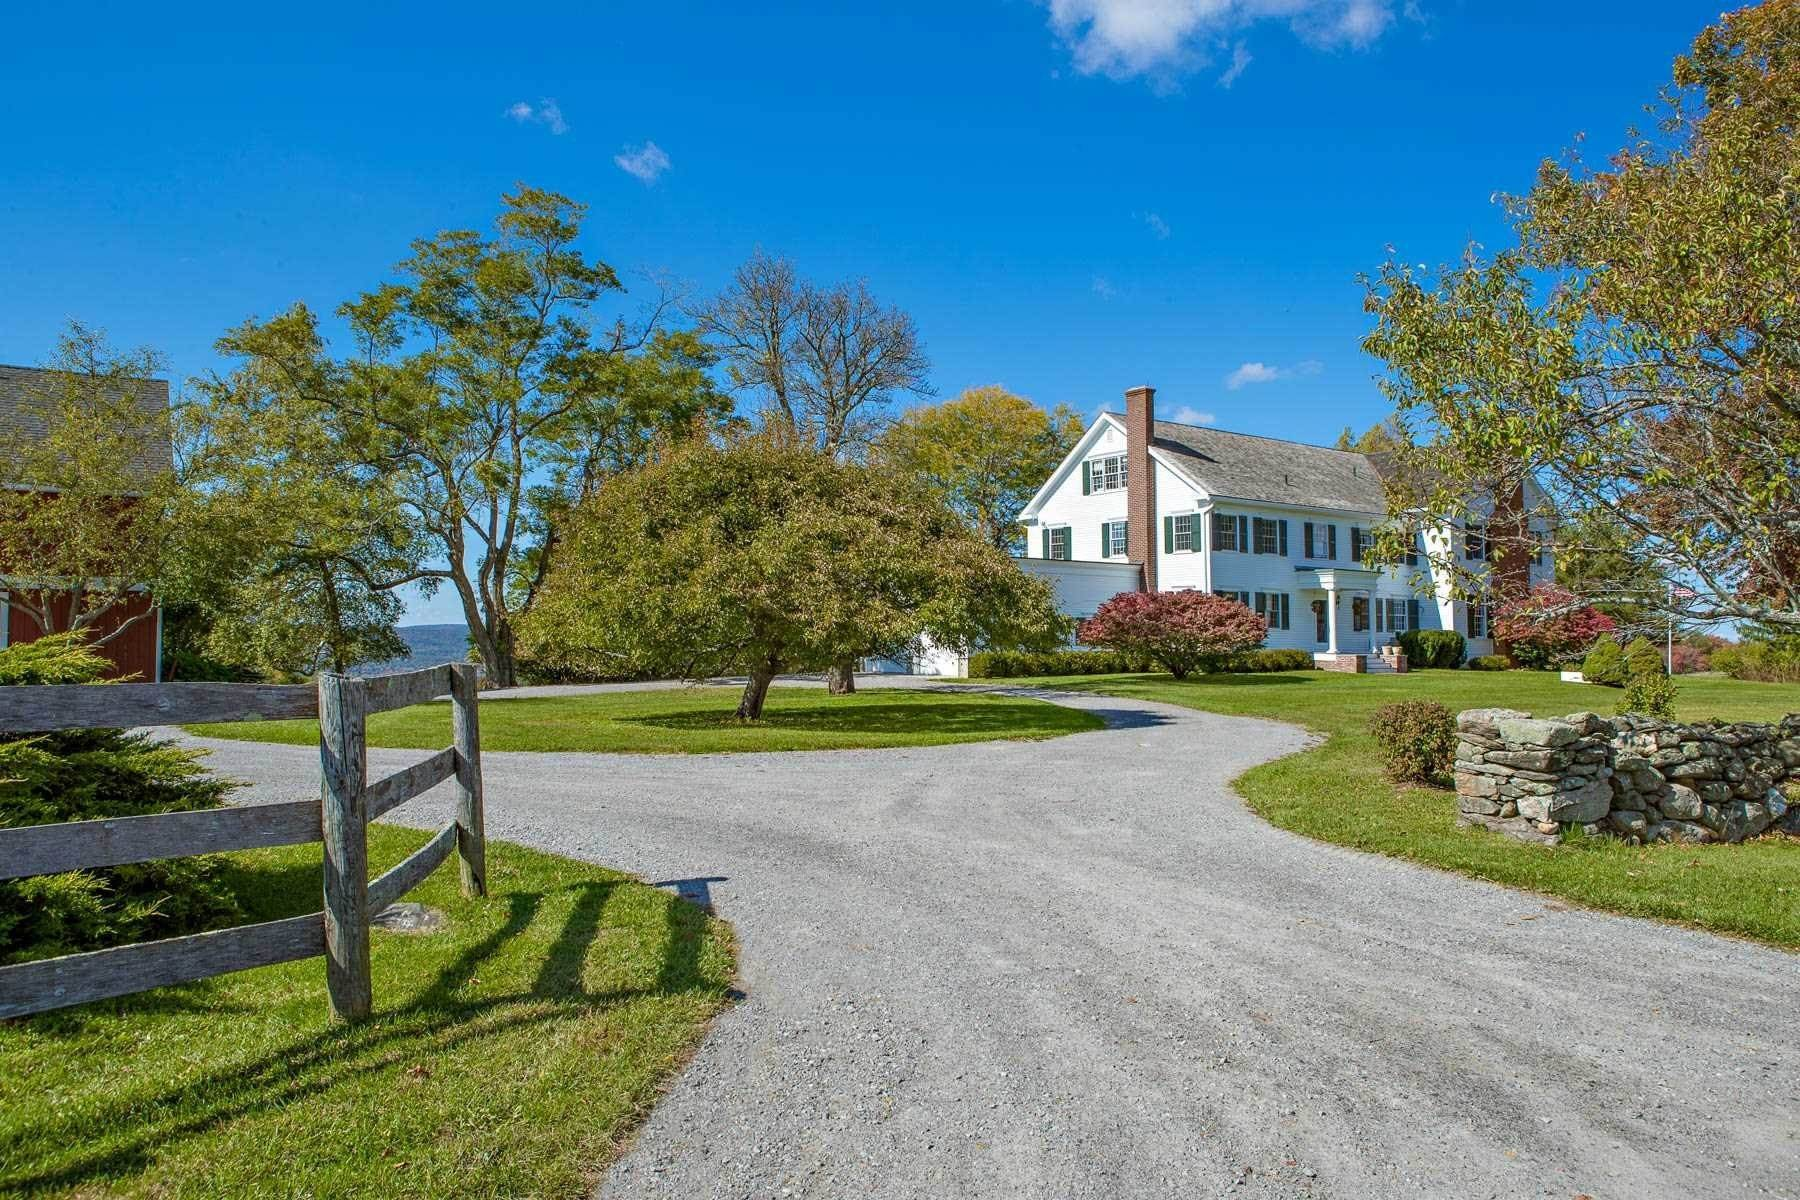 Single Family Homes for Sale at 15 OLD QUAKER HILL ROAD Pawling, New York 12564 United States